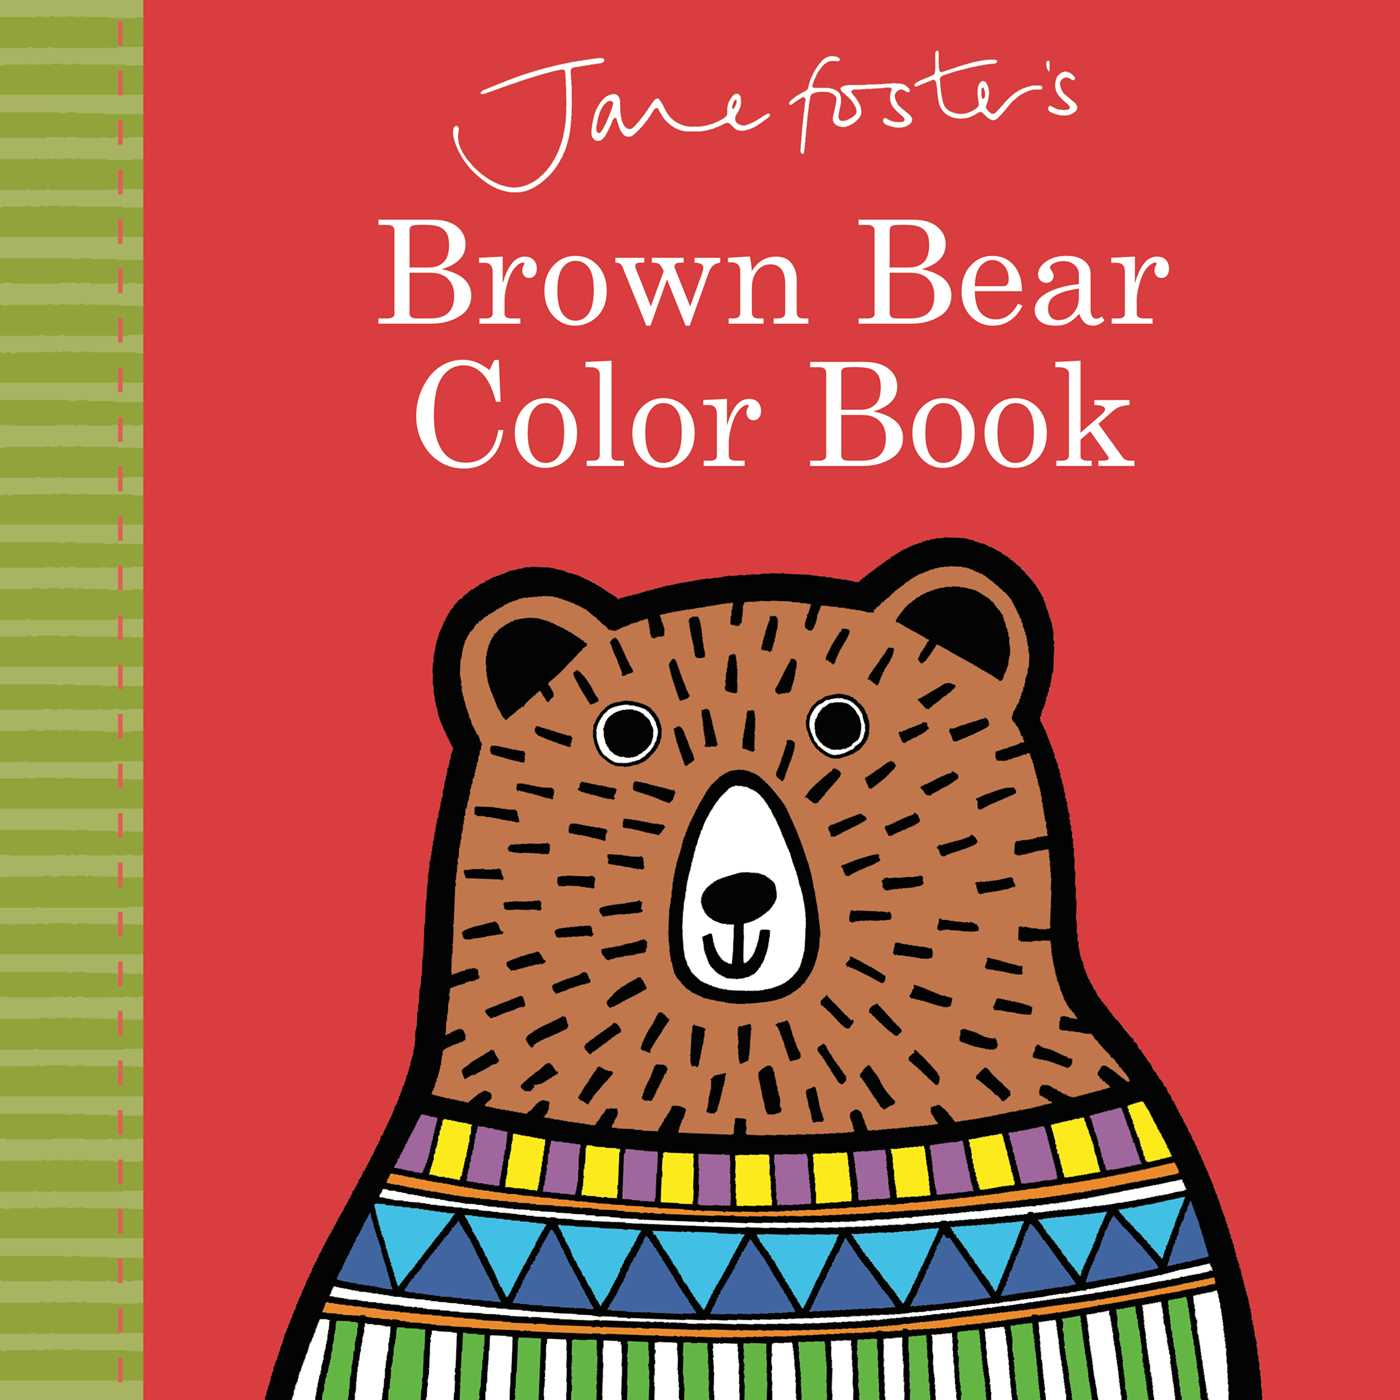 jane foster u0027s brown bear color book book by jane foster